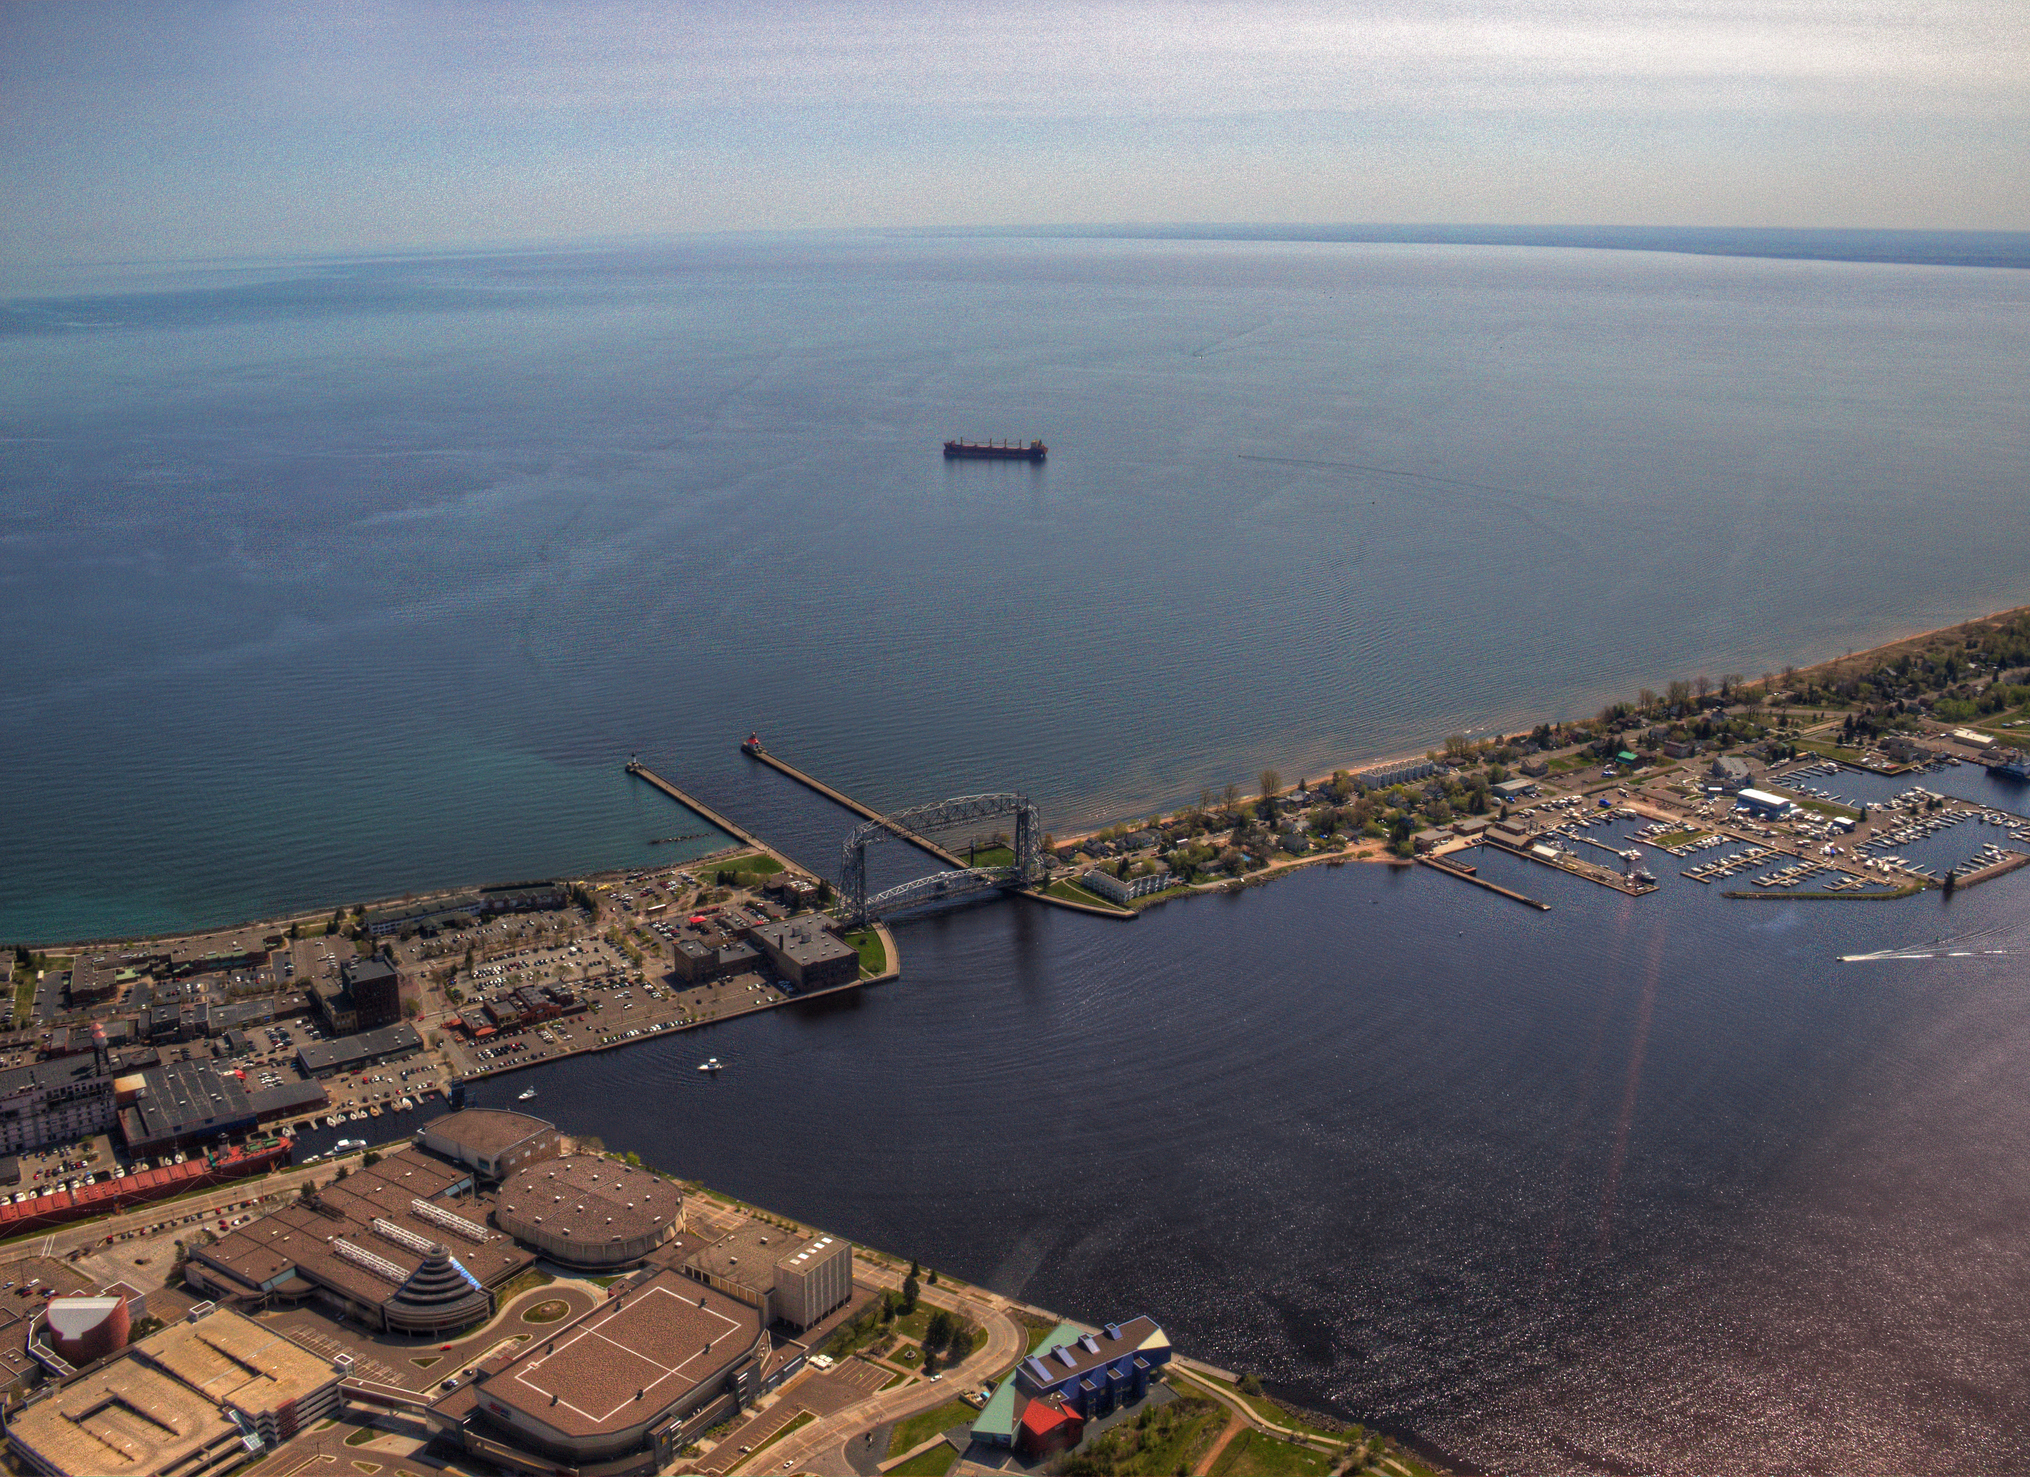 Duluth, Minnesota seen from above from a Helicopter